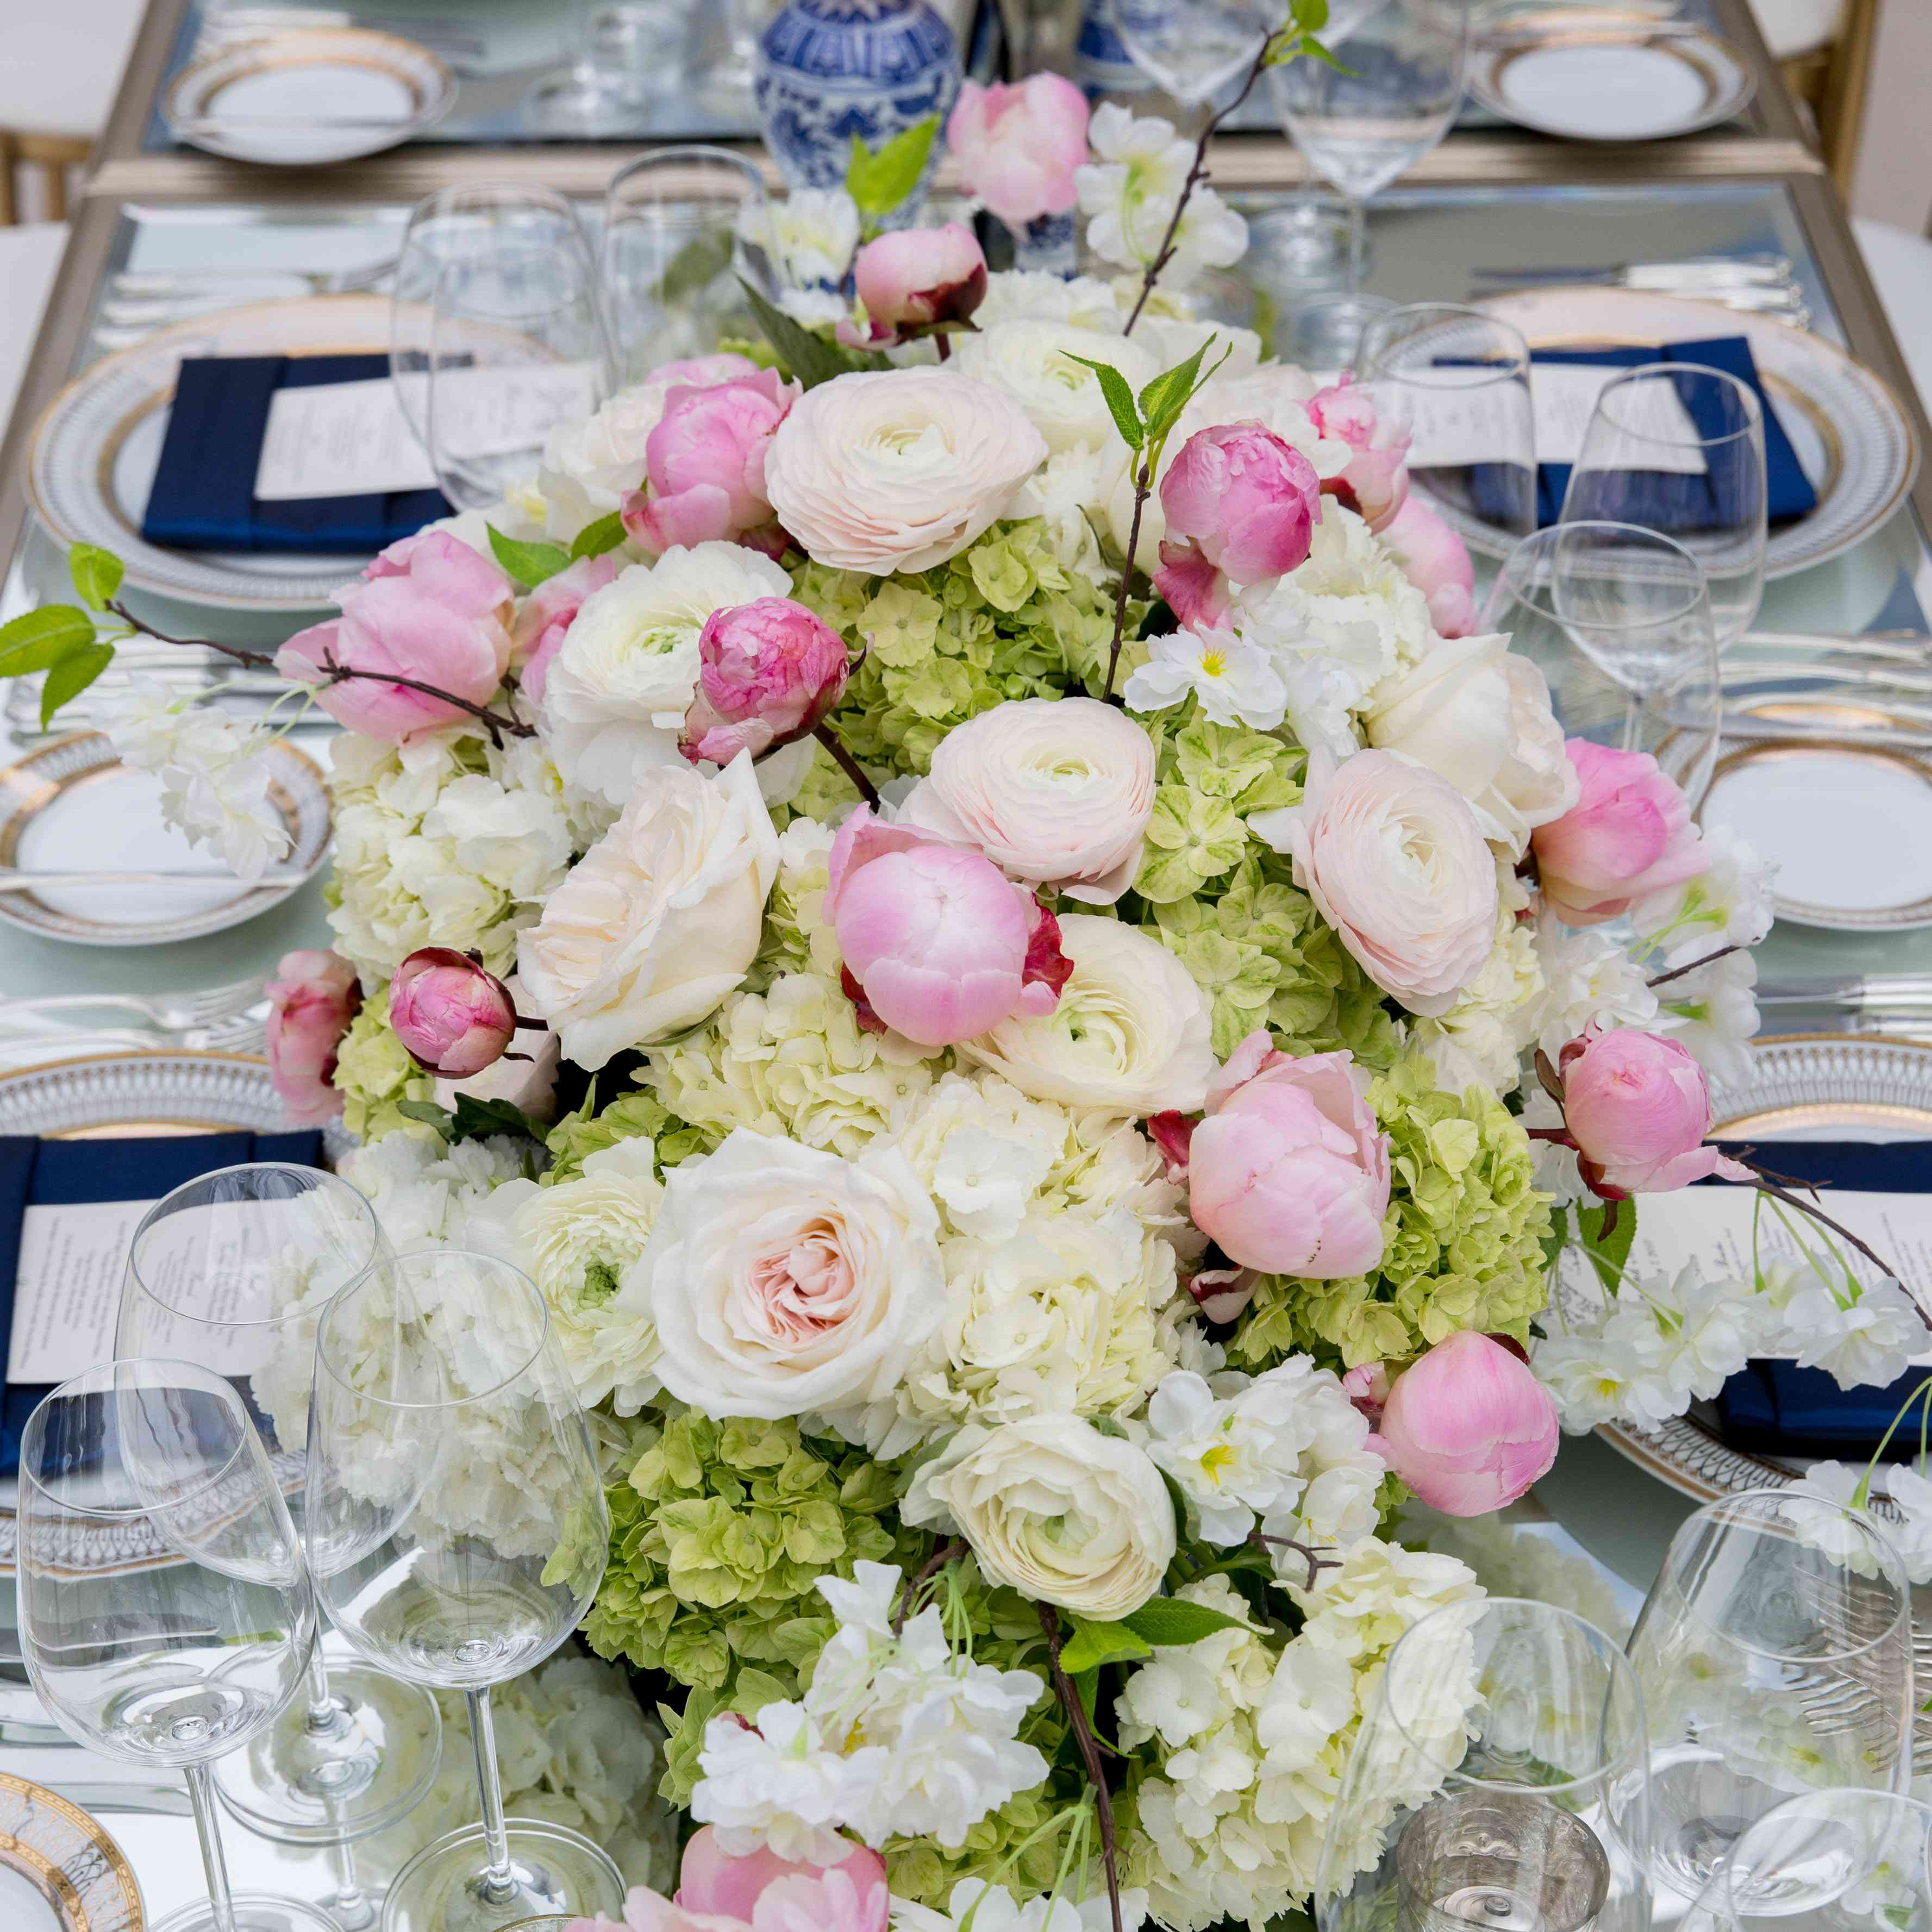 <p>Centerpiece with Green Hydrangeas and Blush Peonies</p><br><br>